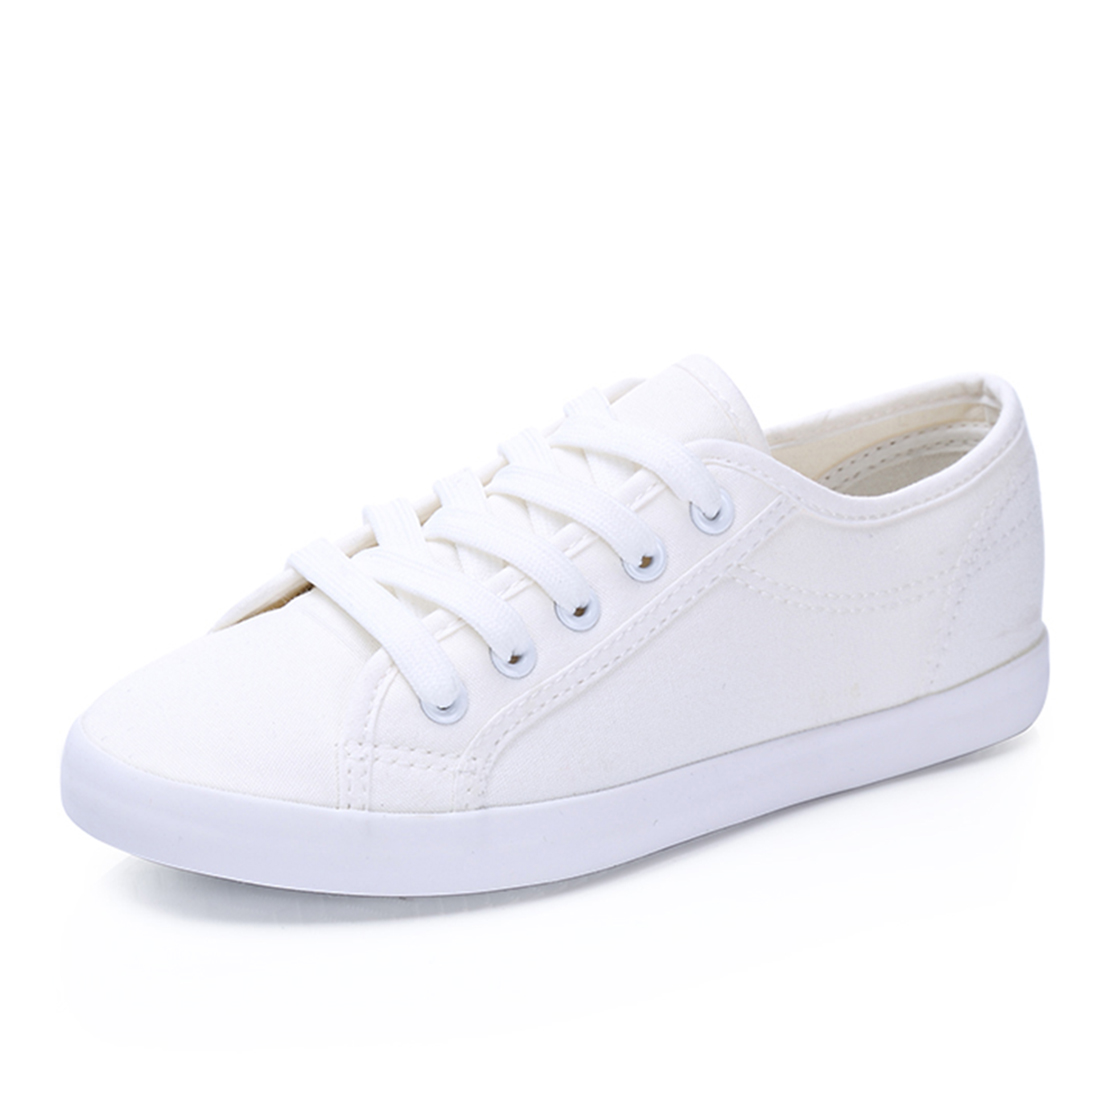 2017 women canvas shoes female white shoes low breathable women solid color flat shoes casual shoe